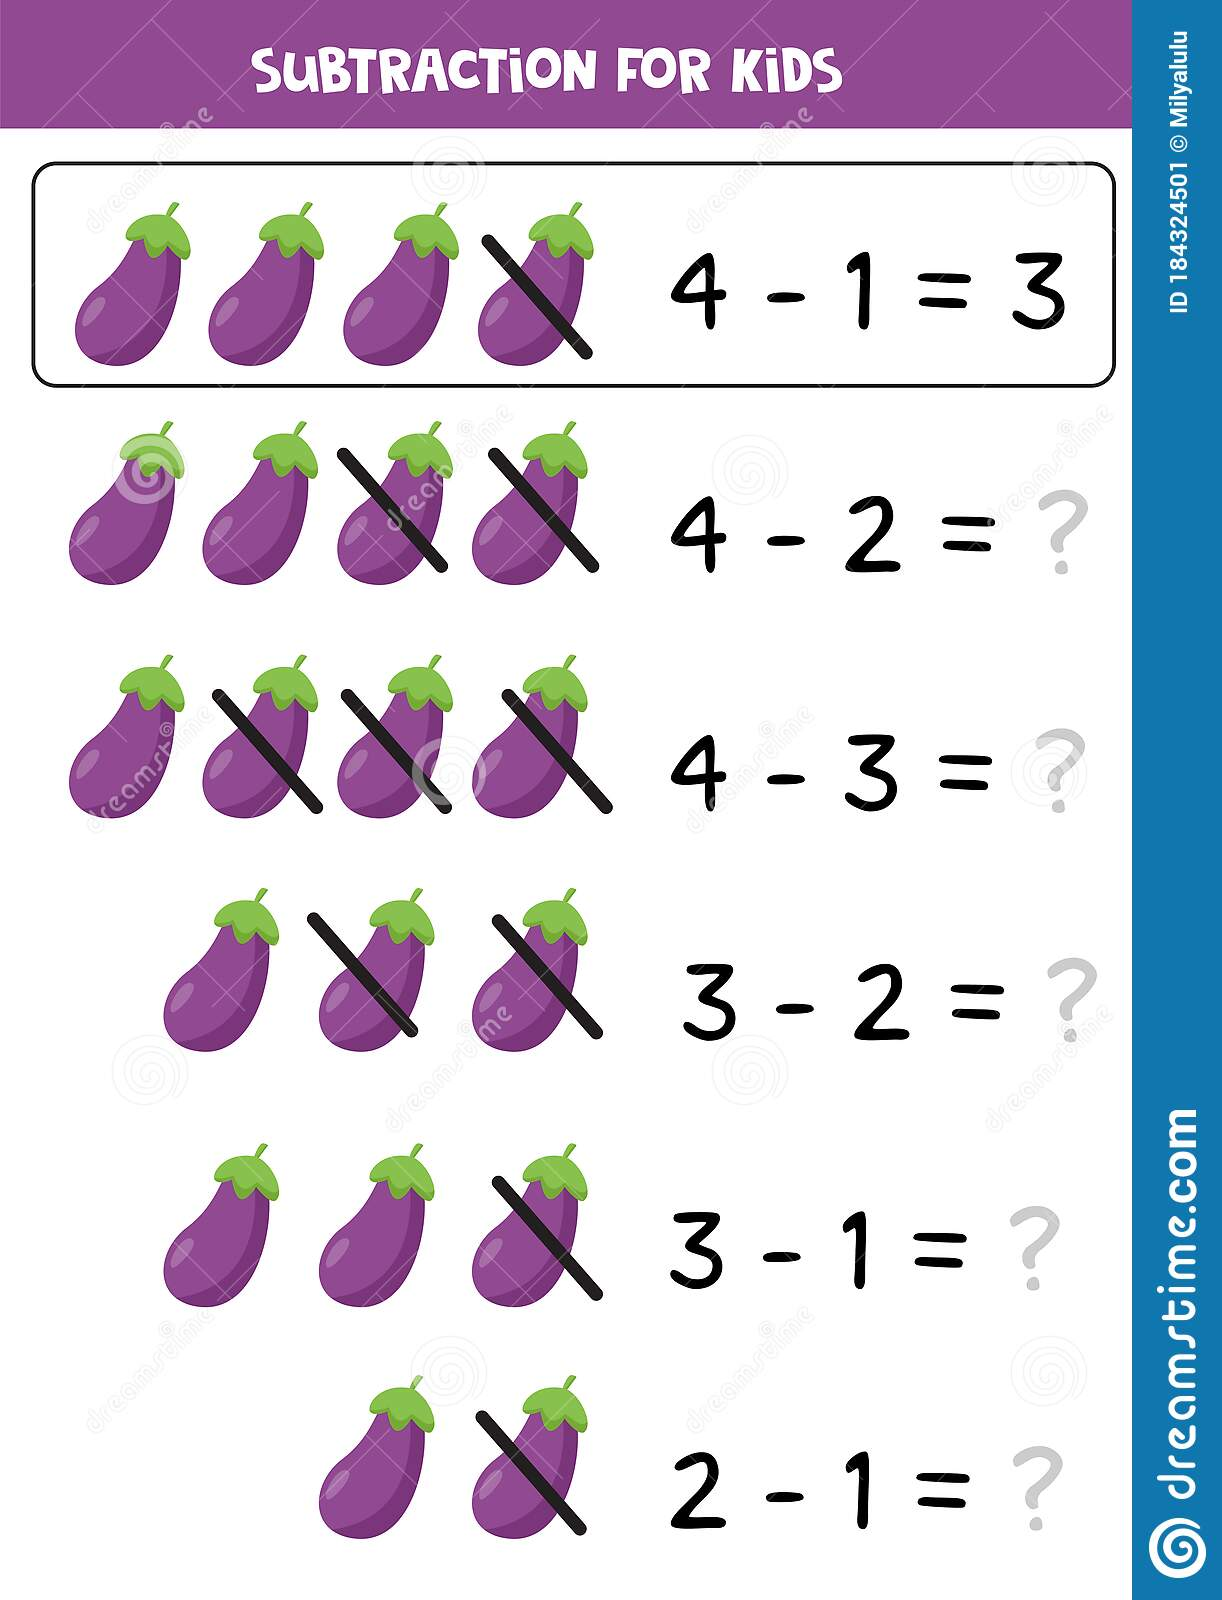 Subtraction Game With Cartoon Eggplants Educational